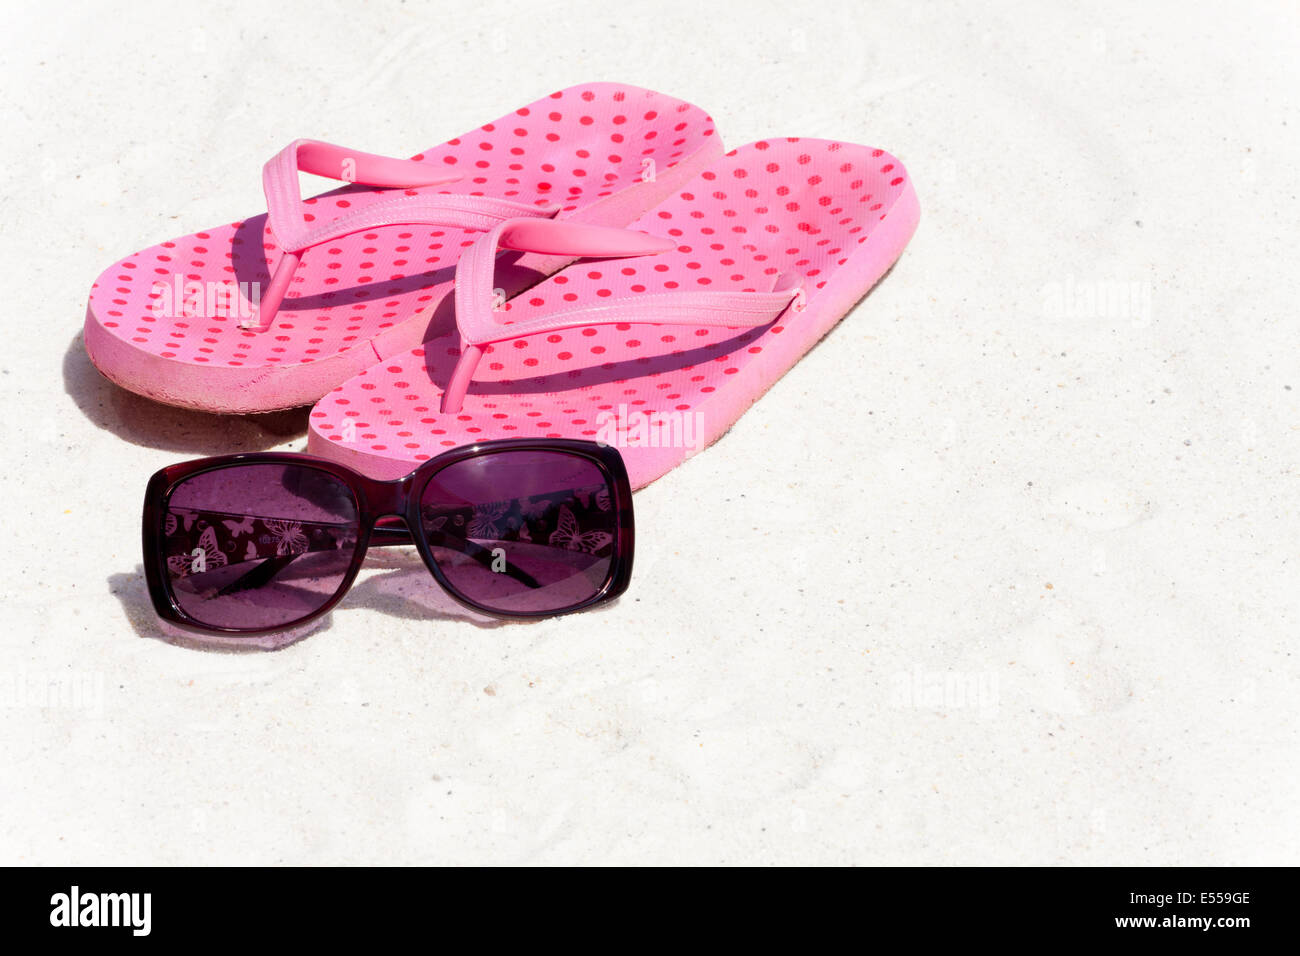 Flip-Flops and Sunglasses in the Sand on the Beach - Stock Image